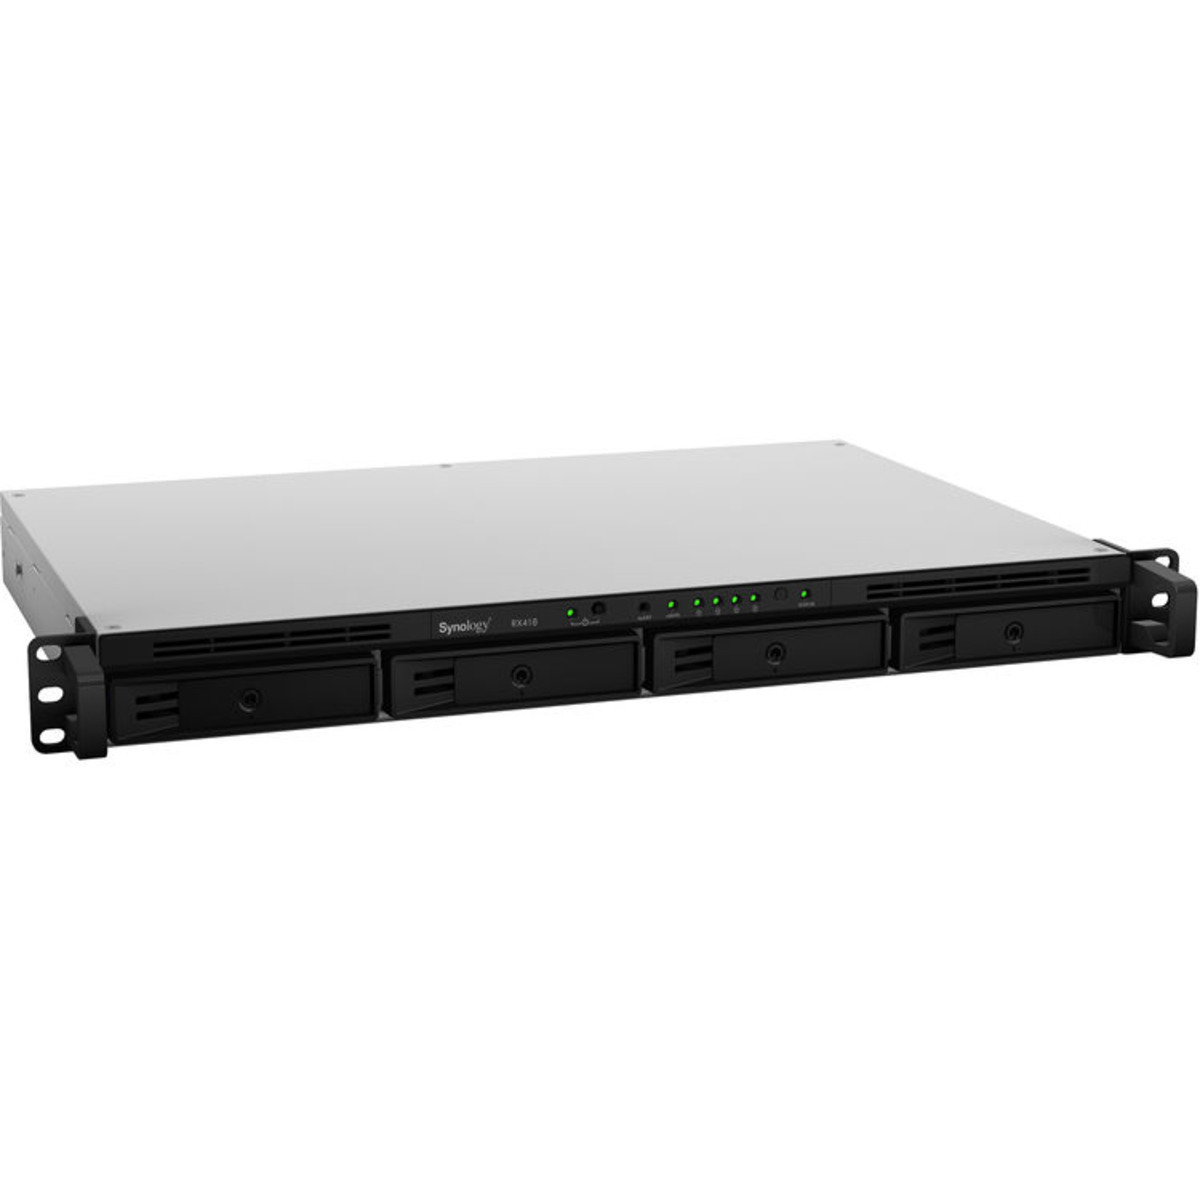 buy $2174 Synology RX418 48tb RackMount Expansion Enclosure 4x12000gb Seagate IronWolf ST12000VN0008 3.5 7200rpm SATA 6Gb/s HDD NAS Class Drives Installed - Burn-In Tested - nas headquarters buy network attached storage server device das new raid-5 free shipping usa holiday new year clearance sale RX418